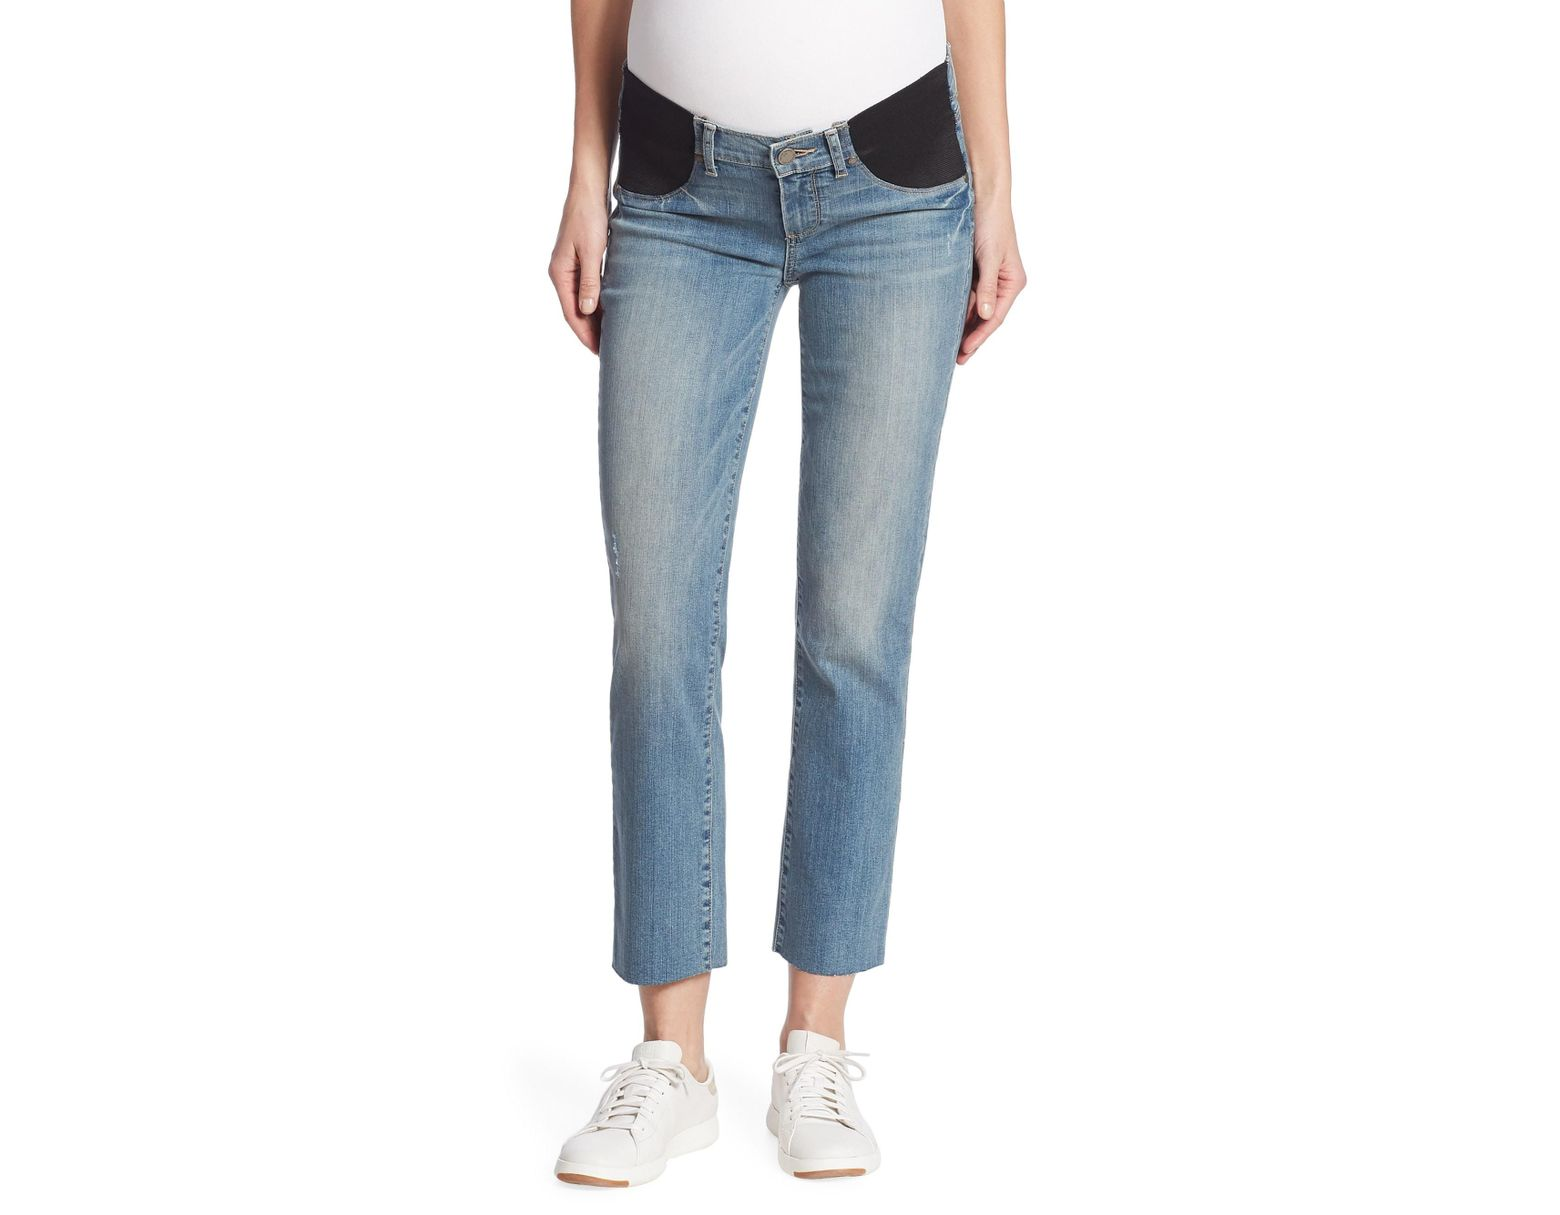 795a60d815c39 PAIGE Women's Miki Straight Leg Maternity Jeans - Big Sur in Blue - Save  63% - Lyst